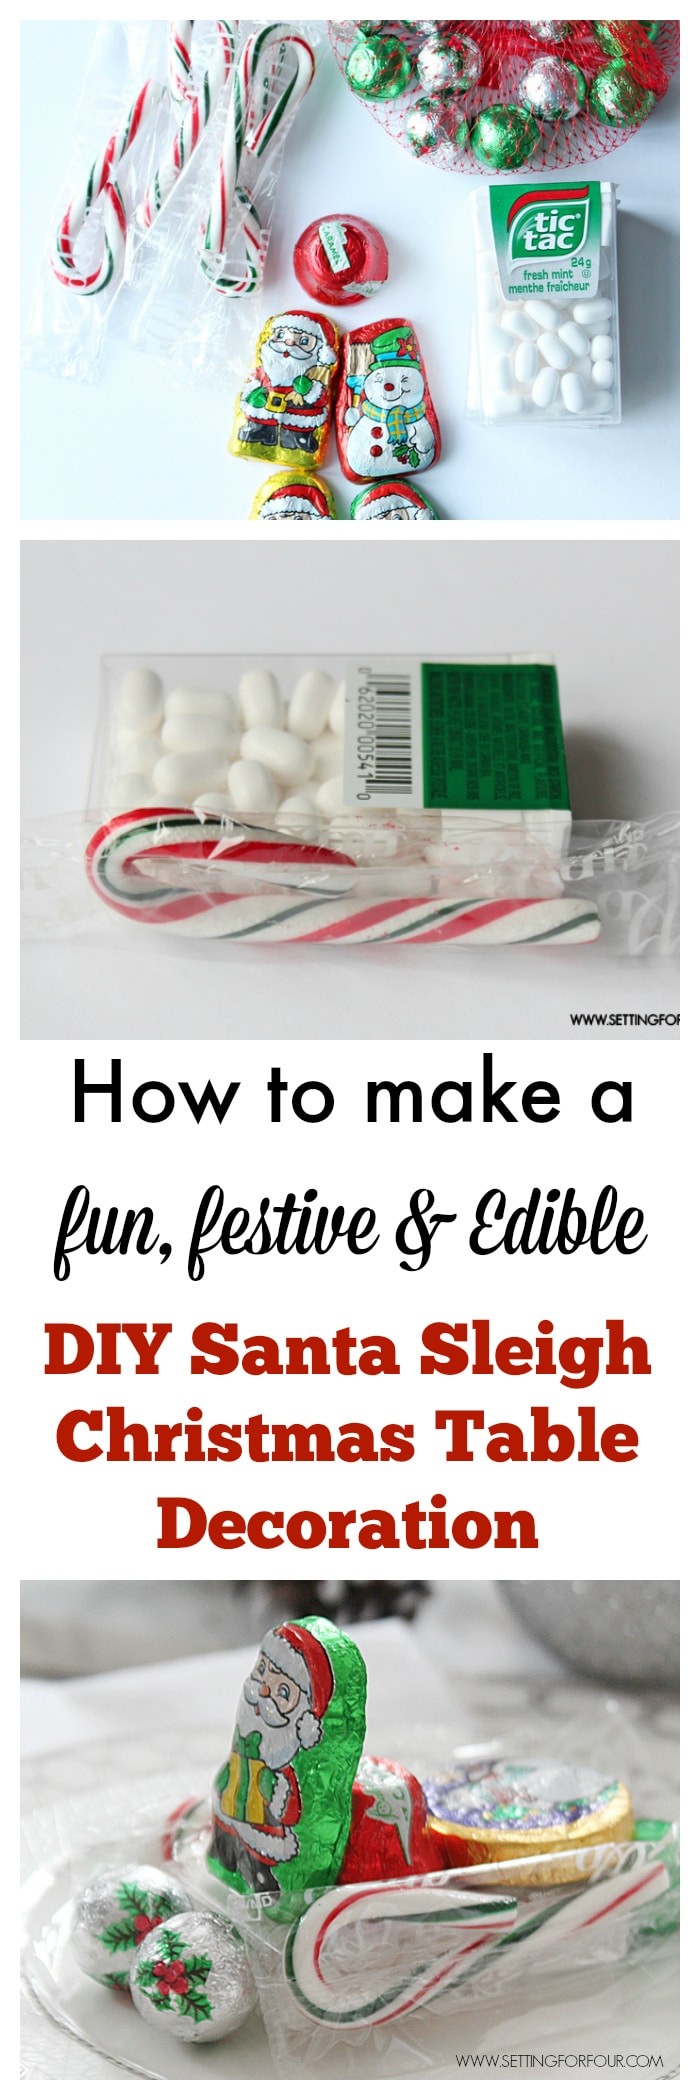 diy-santa-sleigh-christmas-table-decoration-1